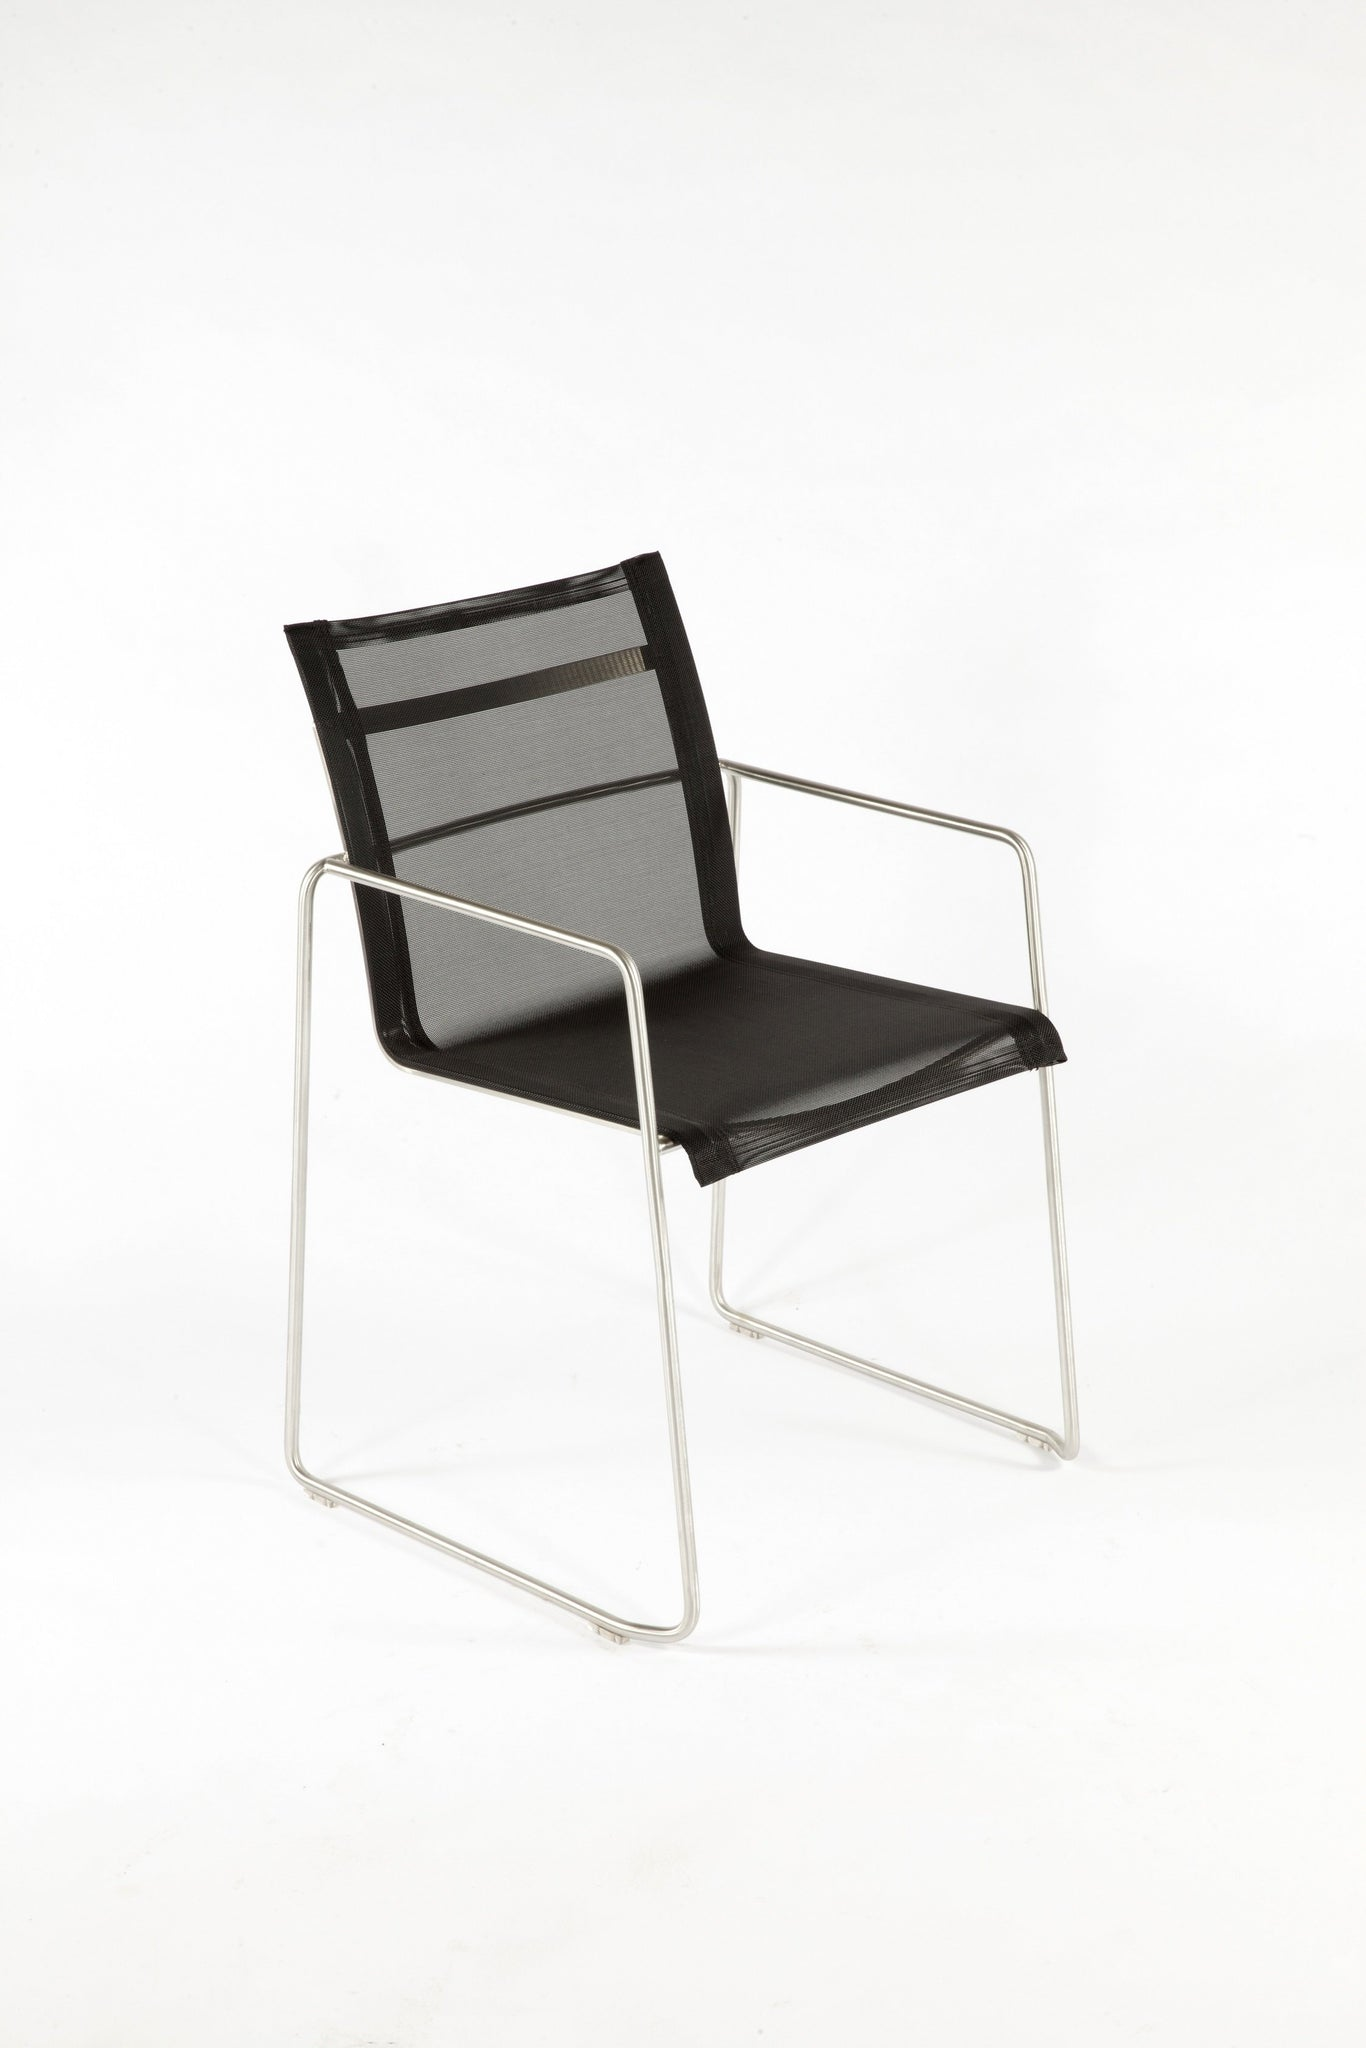 [FCC0704BLK] The Dynamic Arm Chair